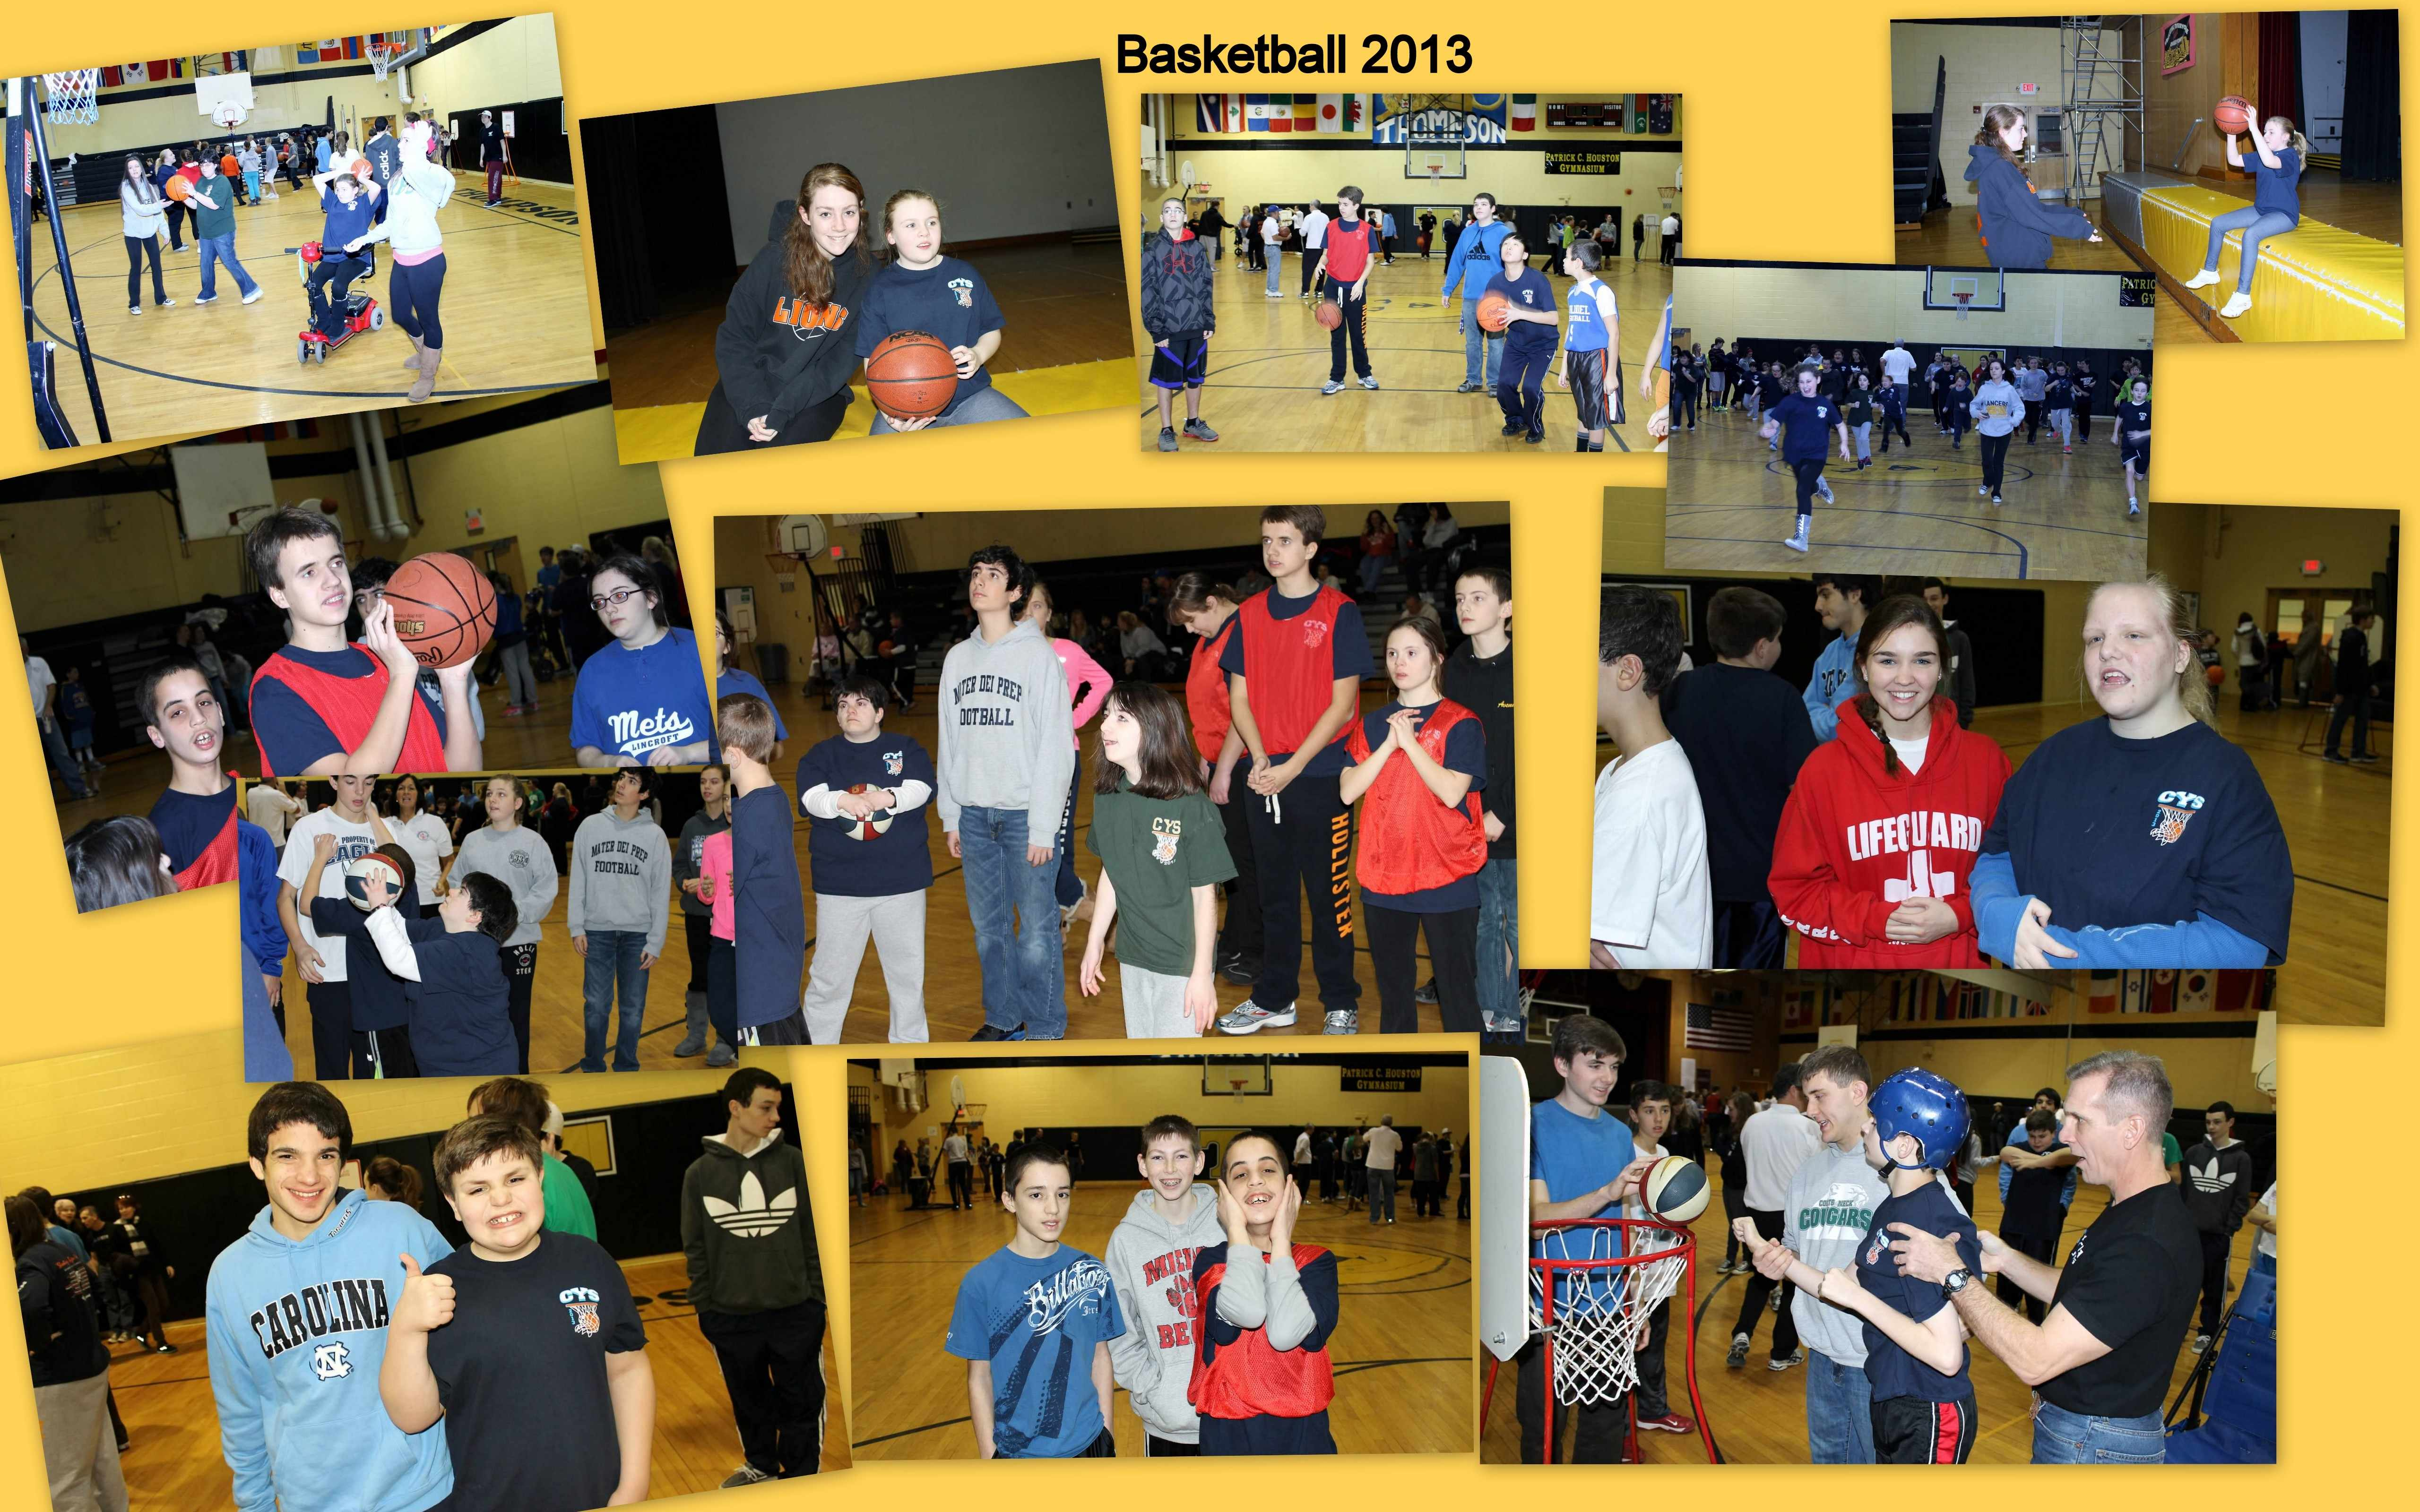 basketball 2013 - yellow